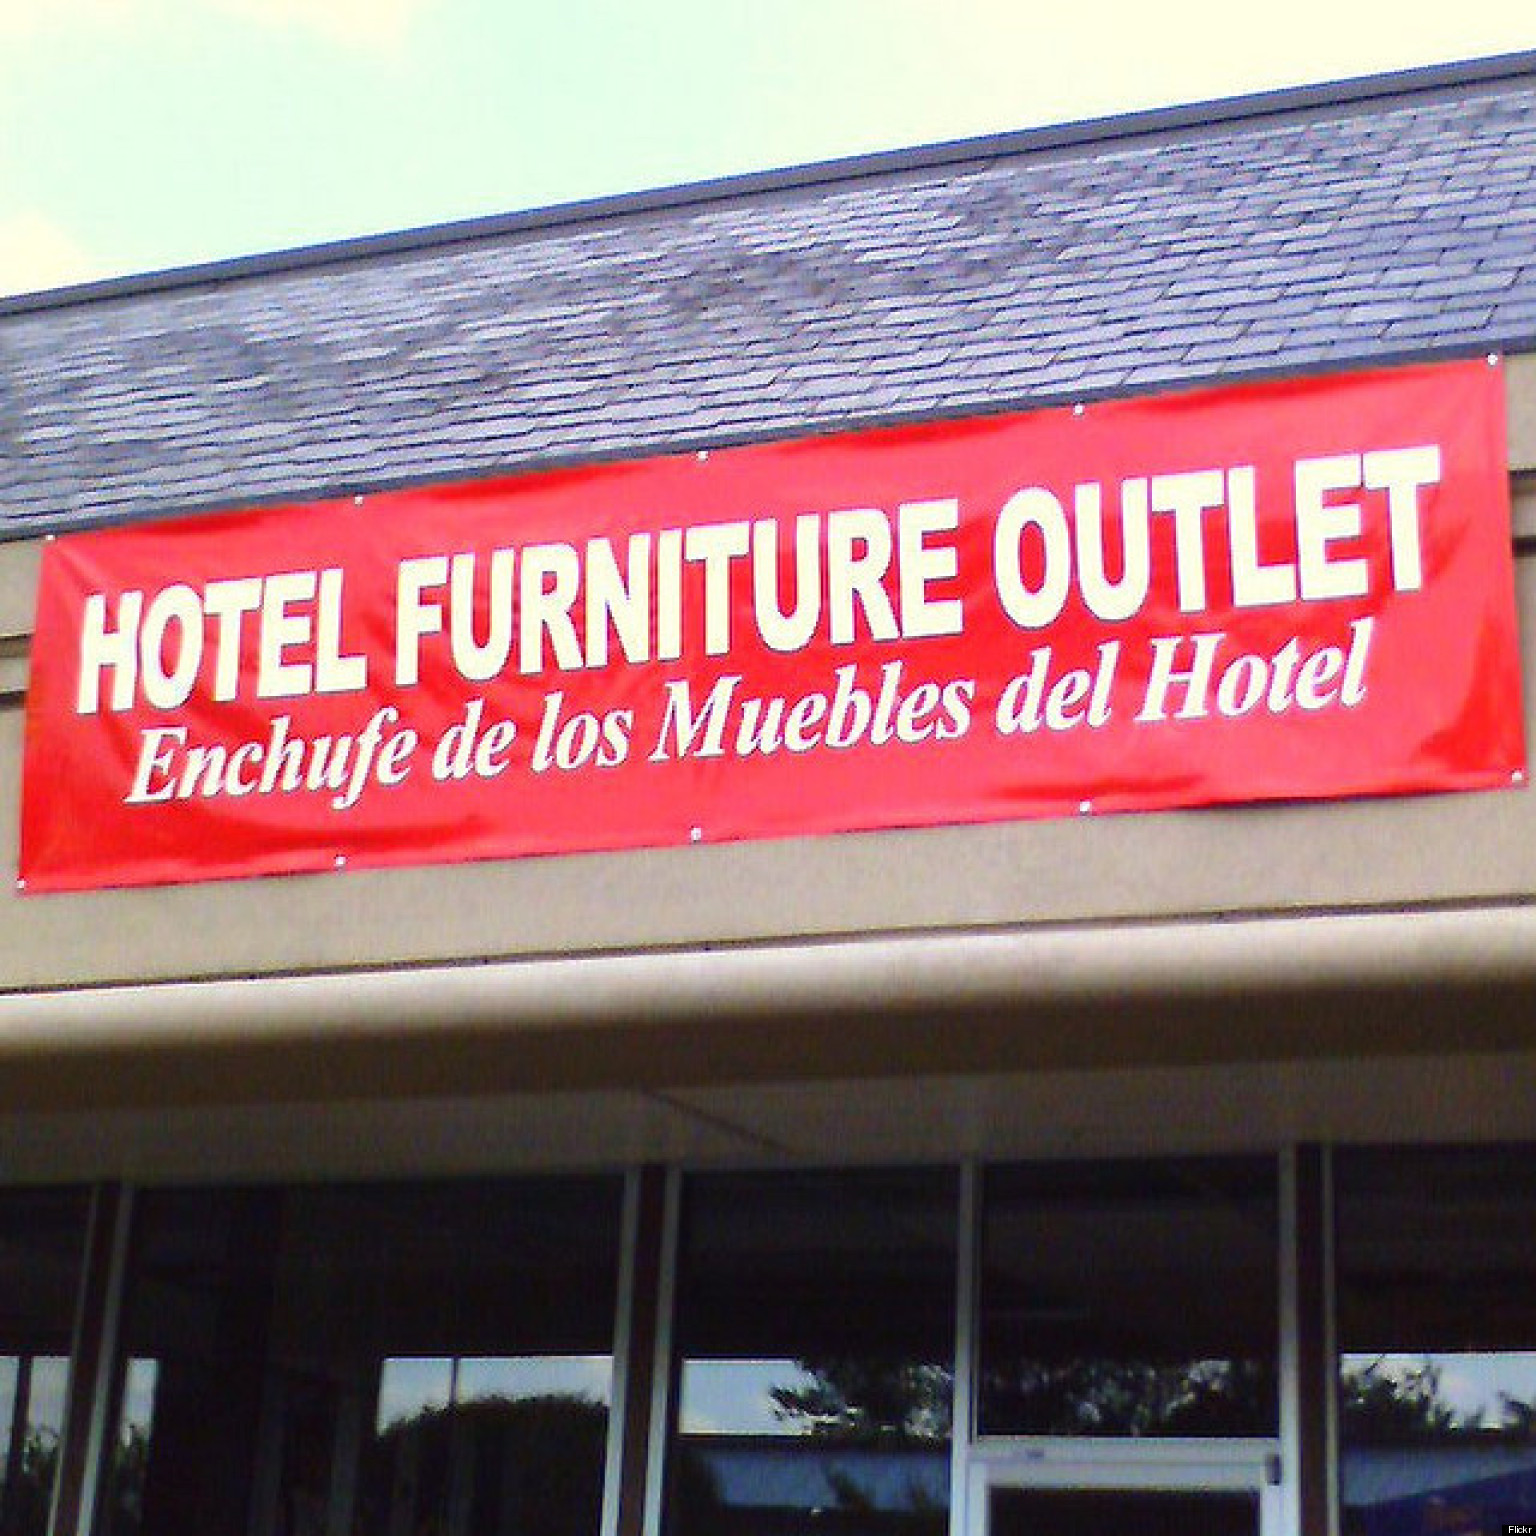 Day Translations Mistranslations- Hotel Furniture Outlet